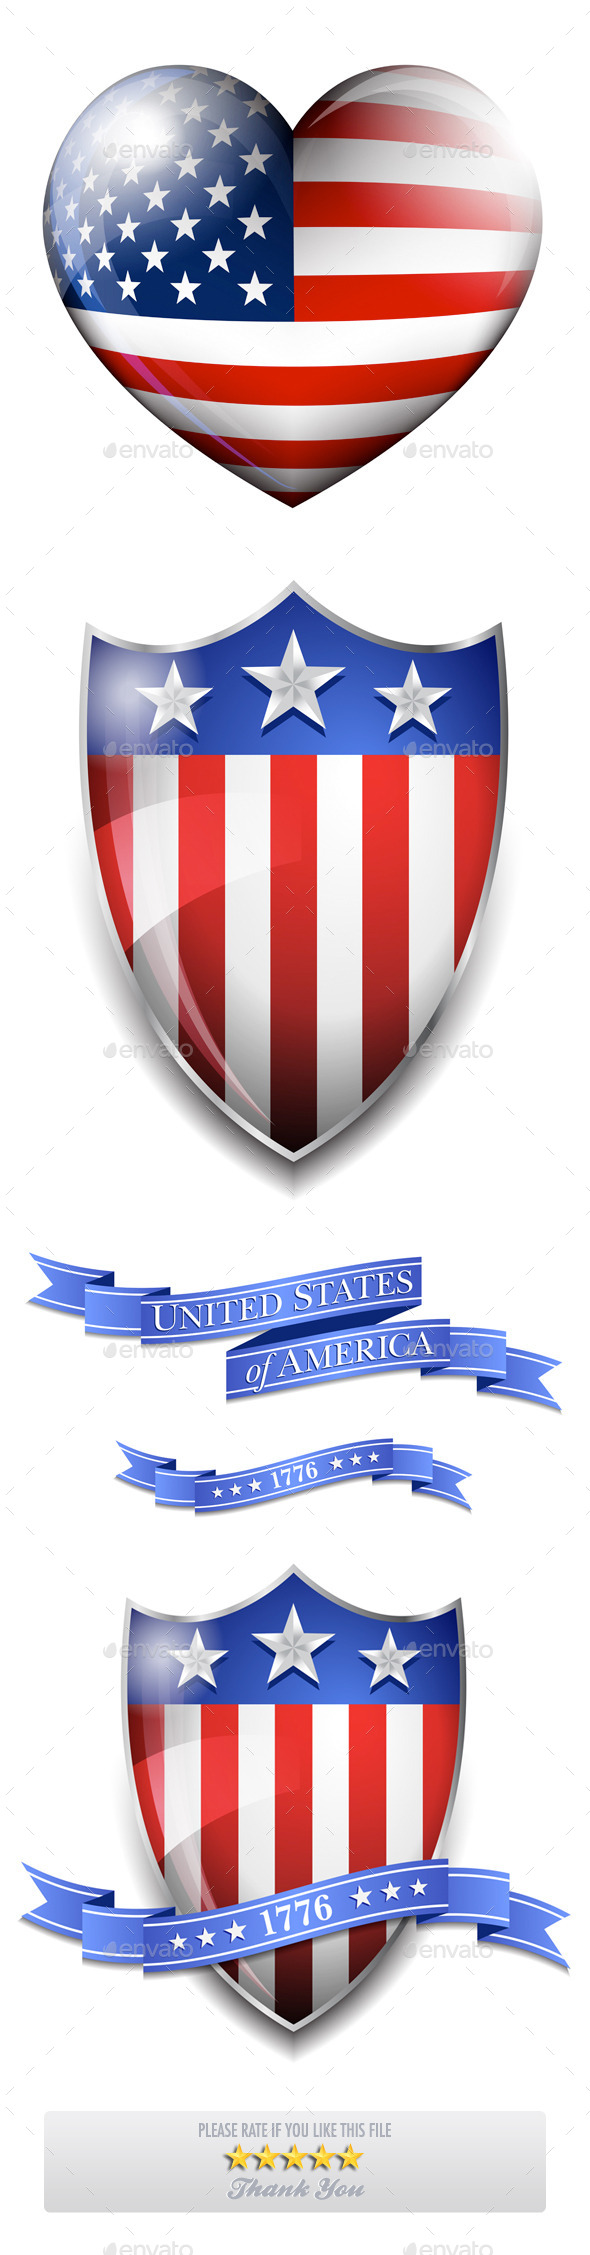 American Stars and Stripes Heart and Shield with Scroll Banners